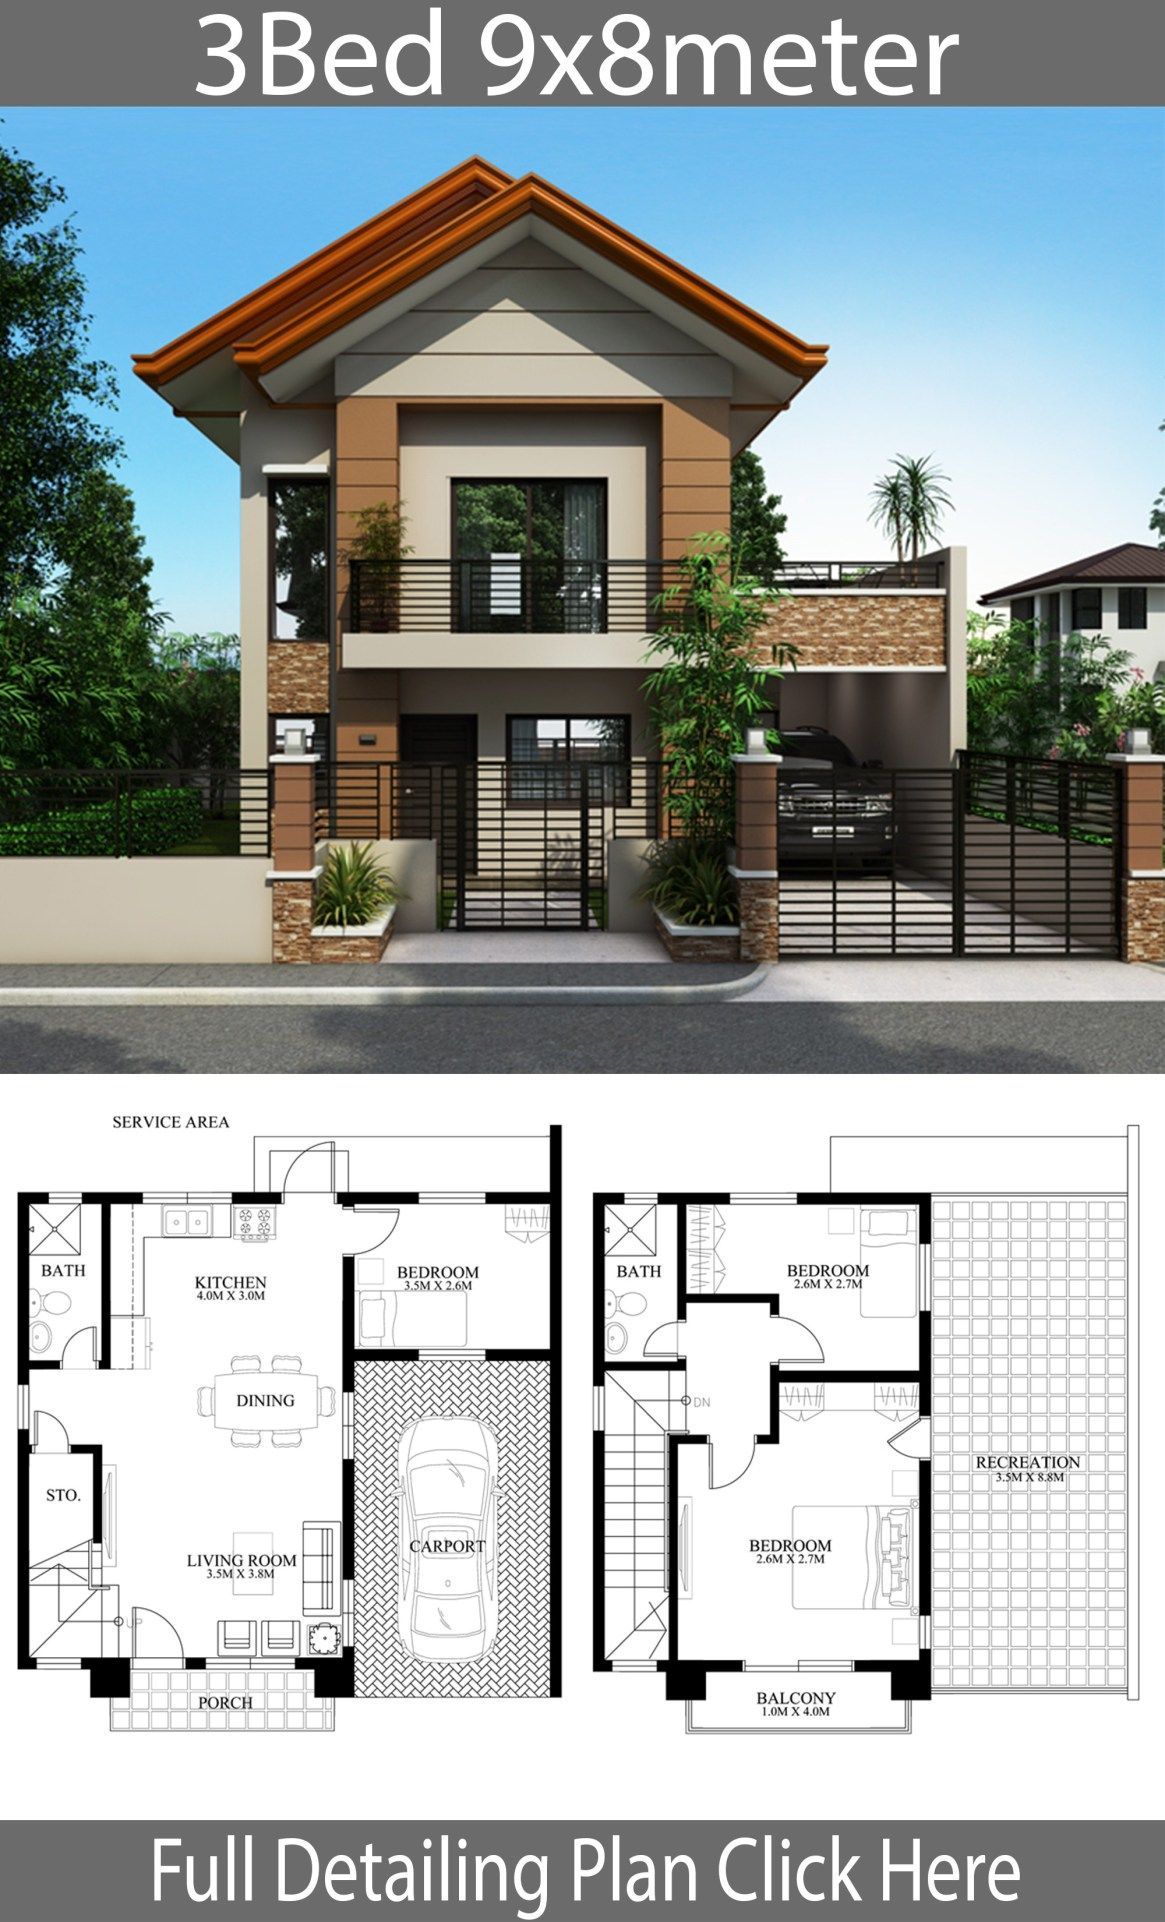 Home Design Plan 9x8m With 3 Bedrooms Home Design With Plansearch Philippines House Design 2 Storey House Design Modern House Floor Plans